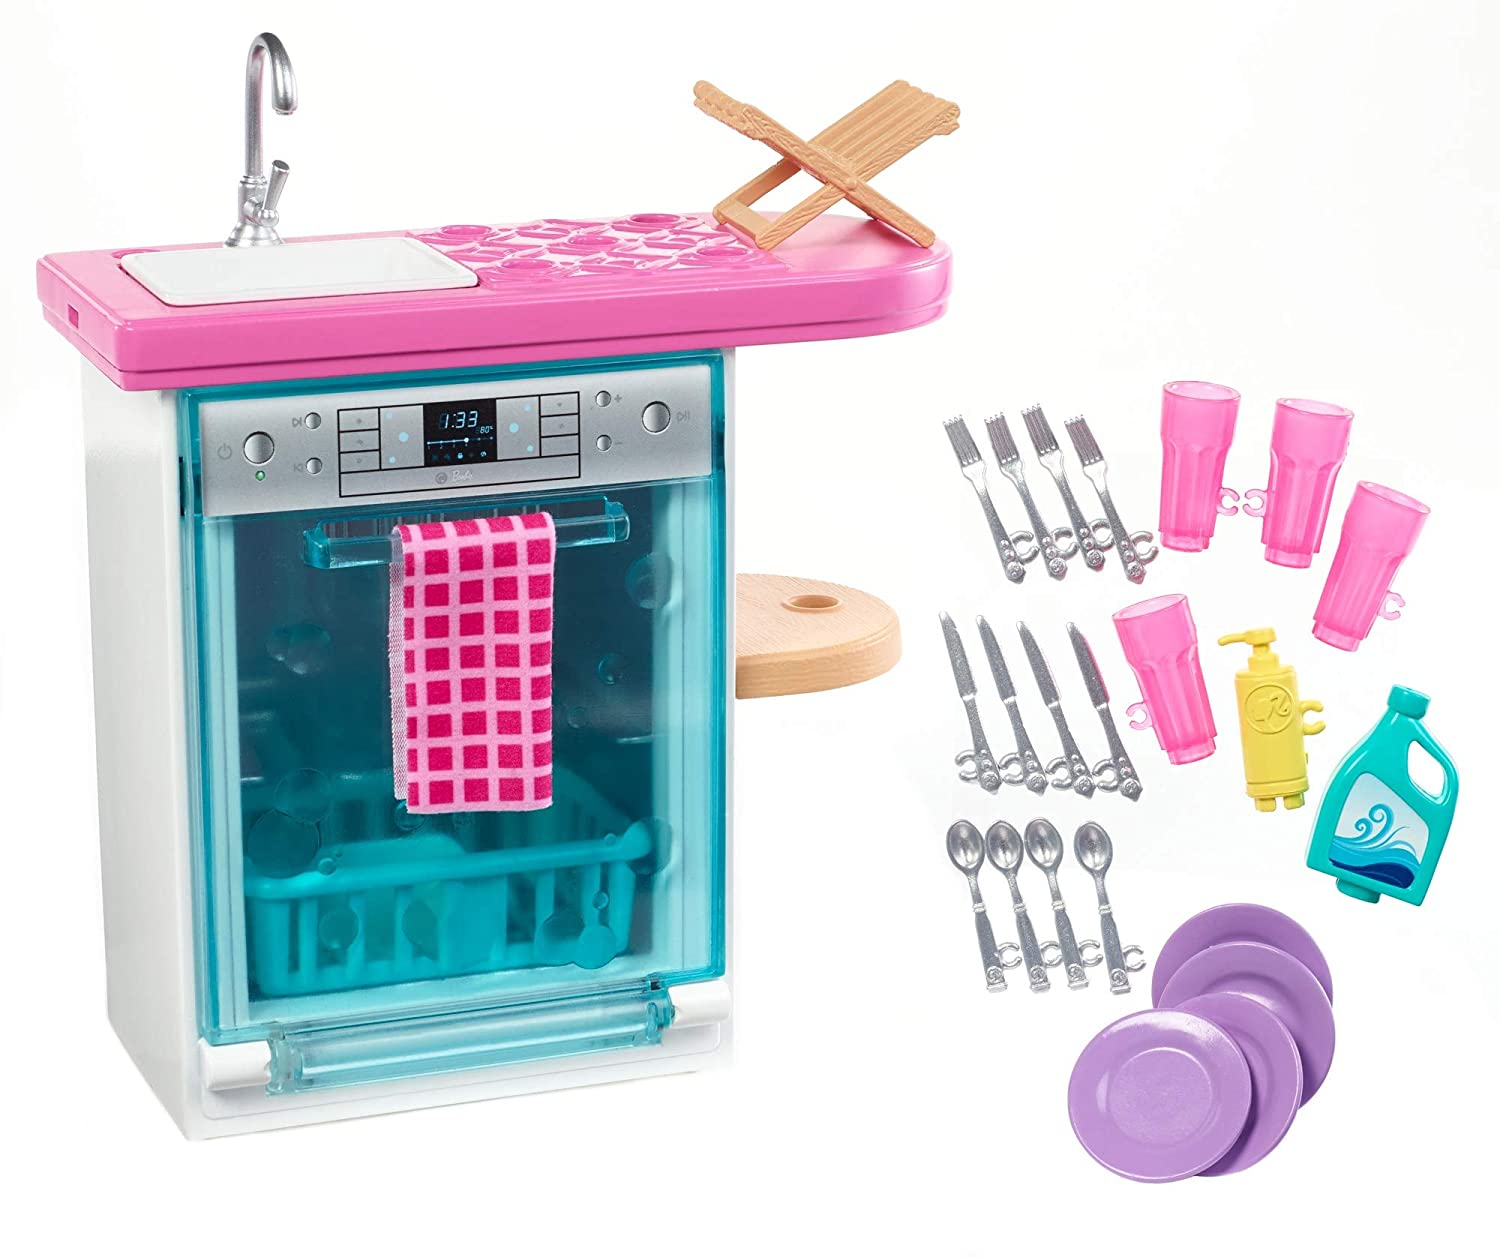 Barbie Dishwasher Playset